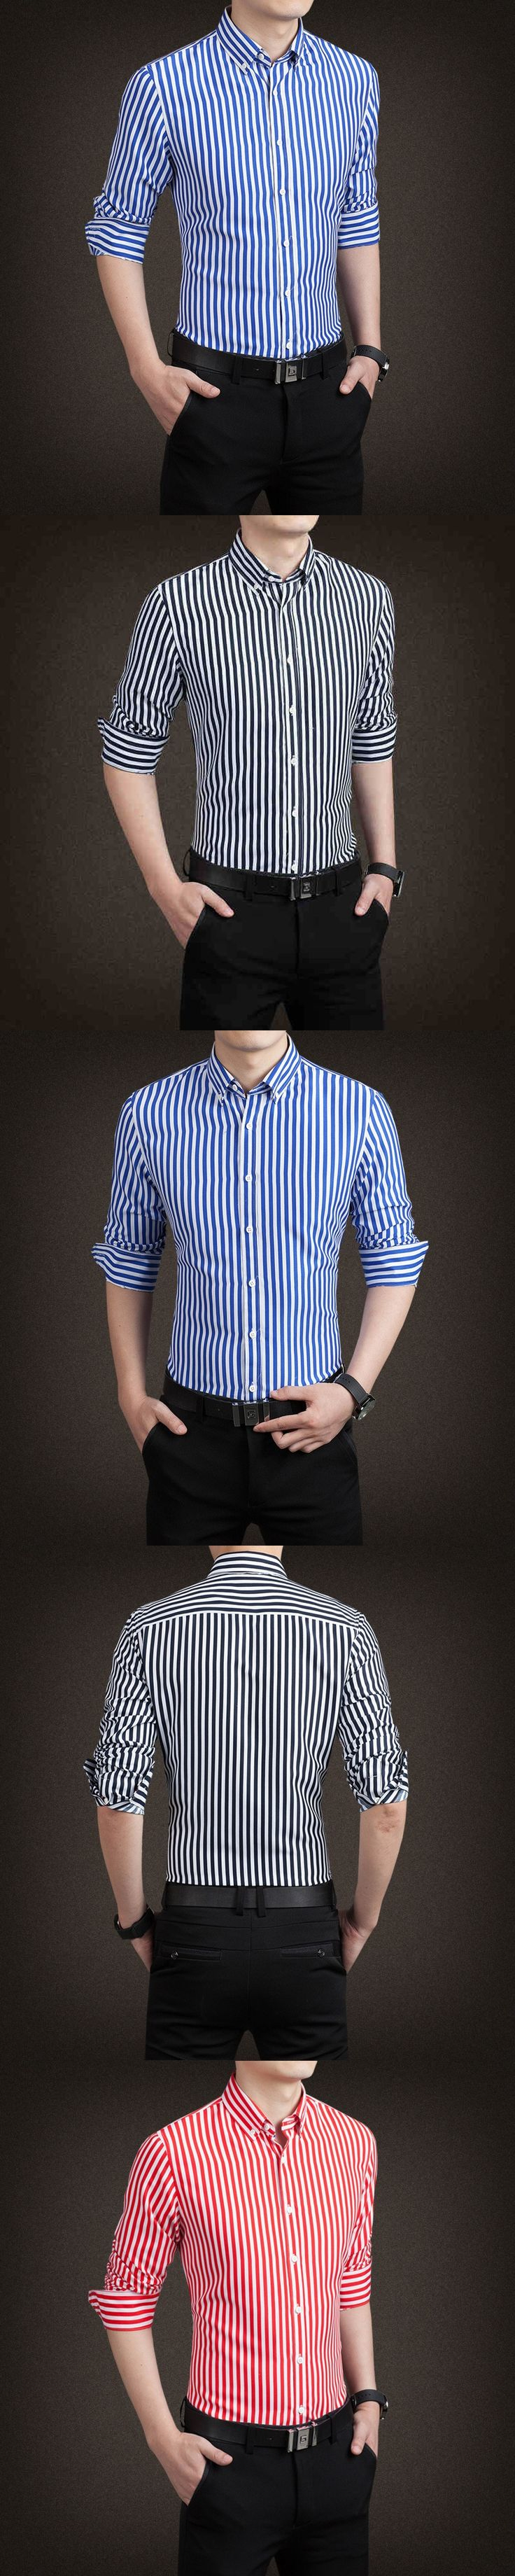 Famous Business Brand Casual Oxford Shirt Men Long Sleeve Slim Fit Fall Cotton Stylish Striped Mens Dress Shirts Free Shipping